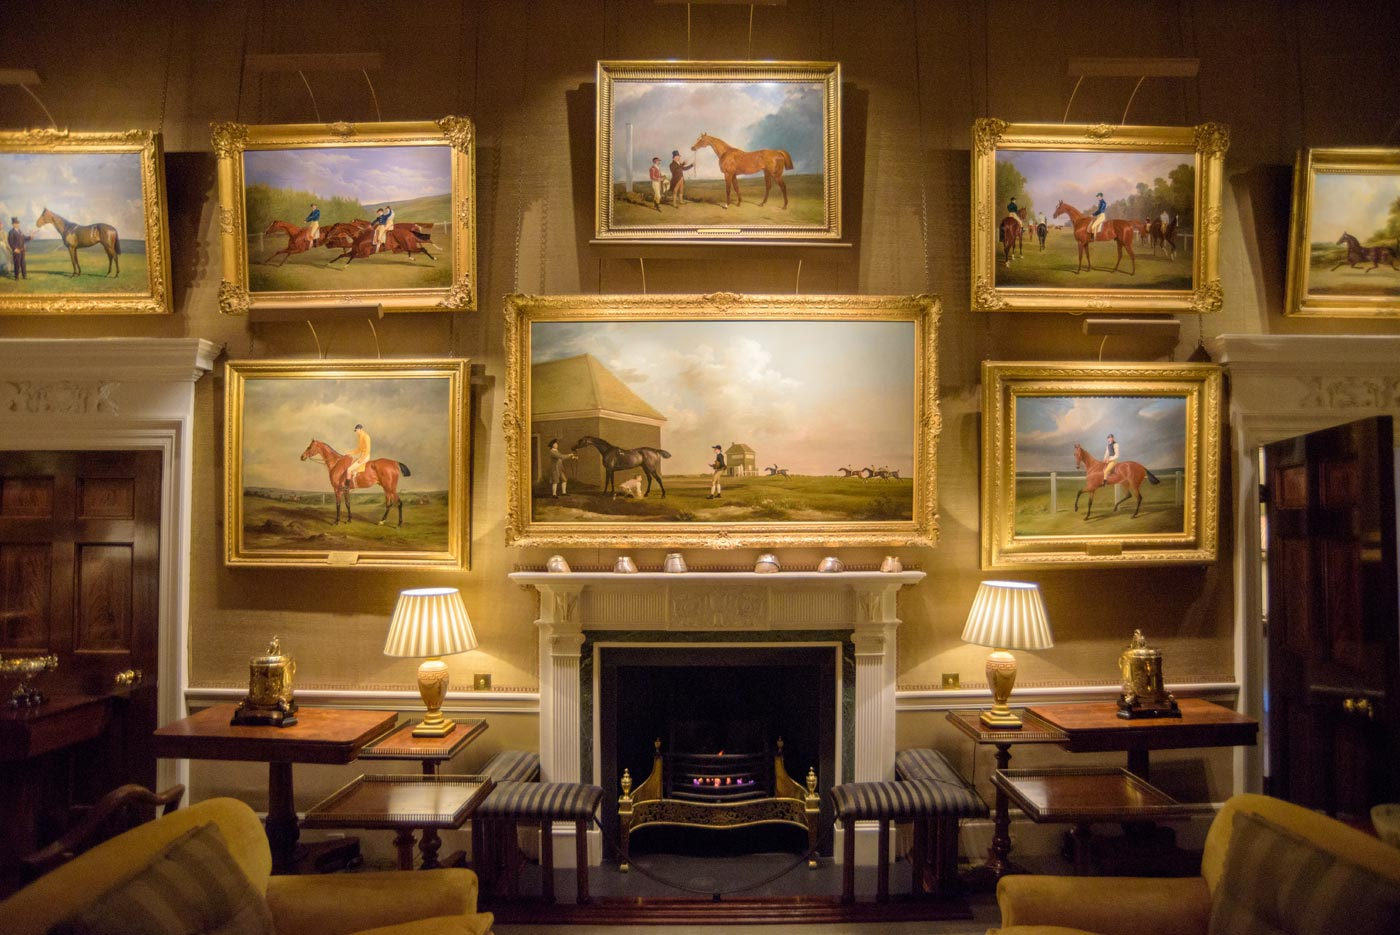 Part of the Jockey Club Art Collection